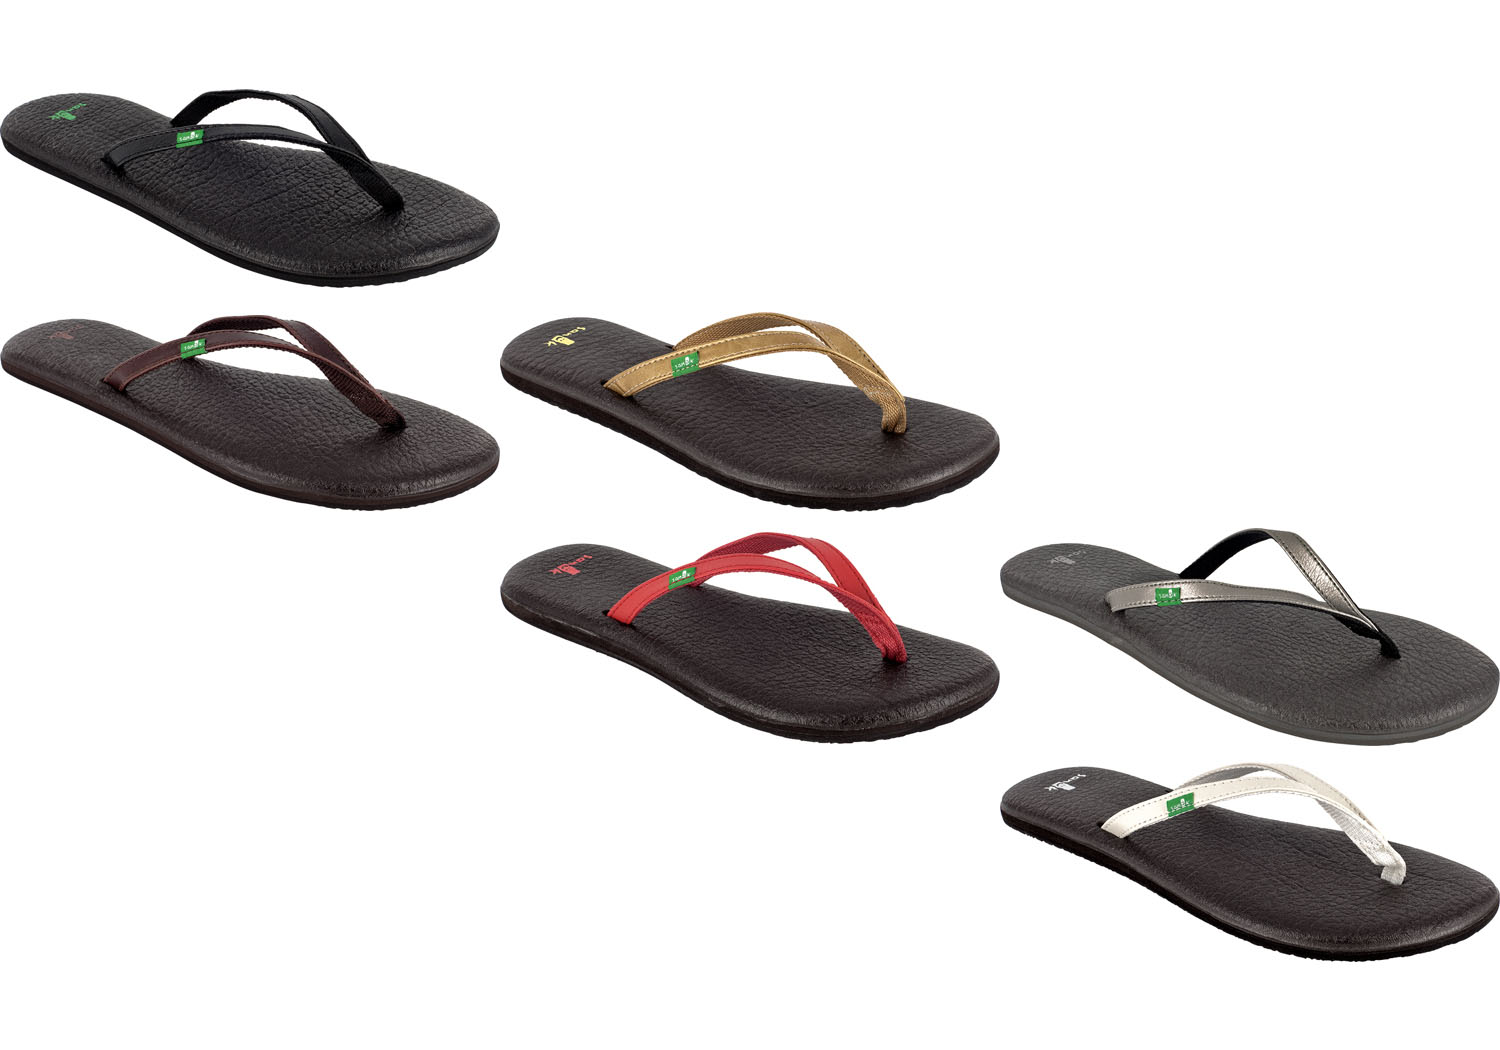 Sanuk Yoga Mat Sandals The Best Thing To Happen To You